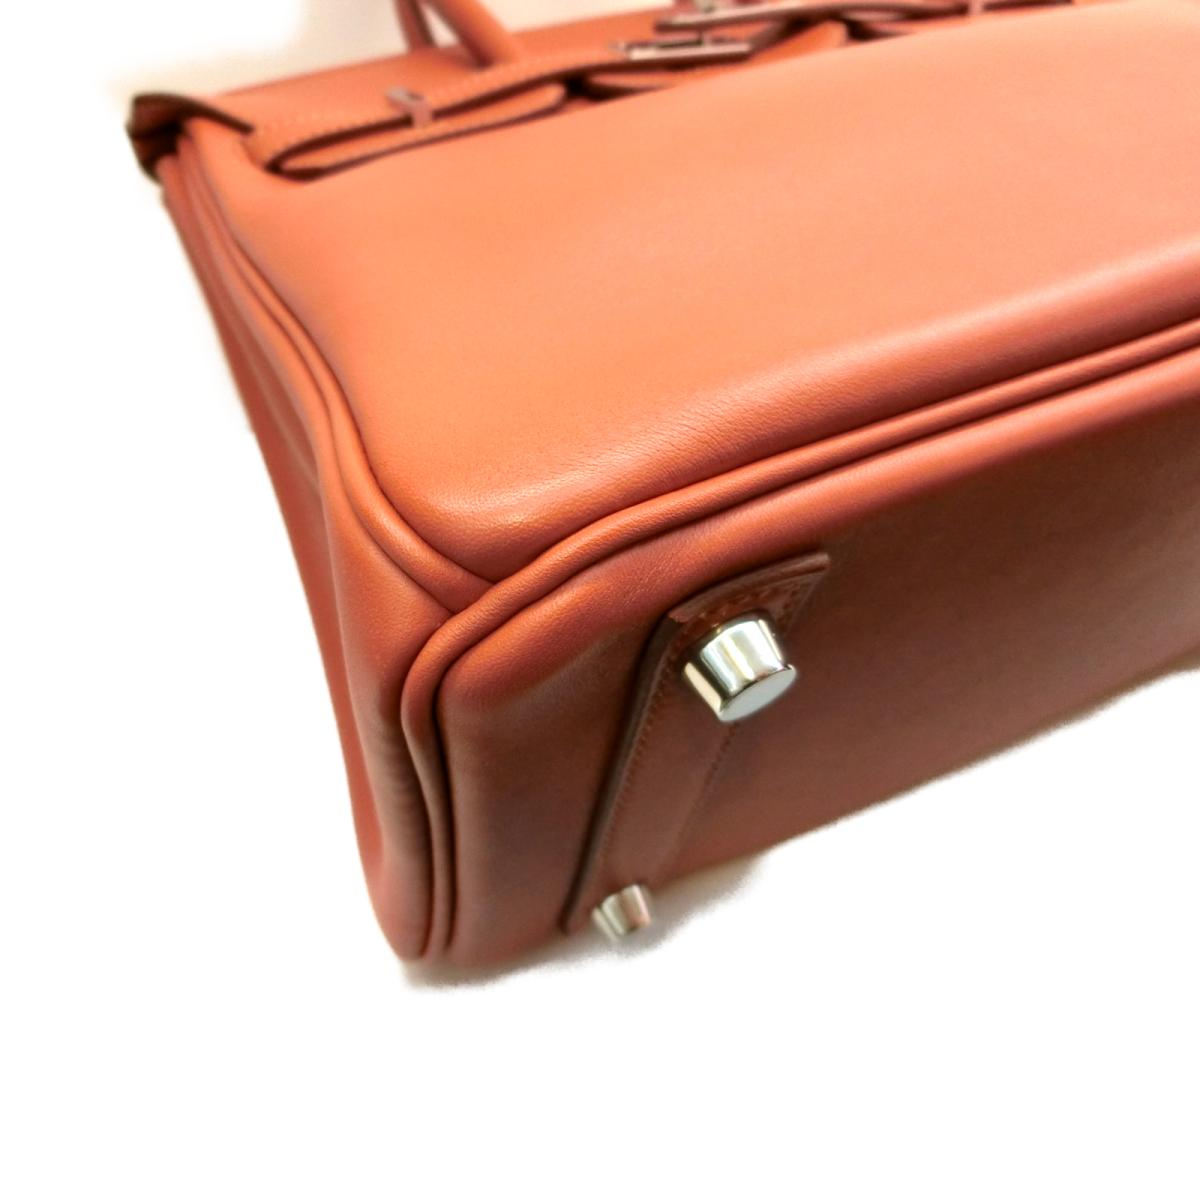 bae606e76d94 Auth HERMES Birkin 25 hand tote bag Swift leather Rosy Pink SHW Used Vintage